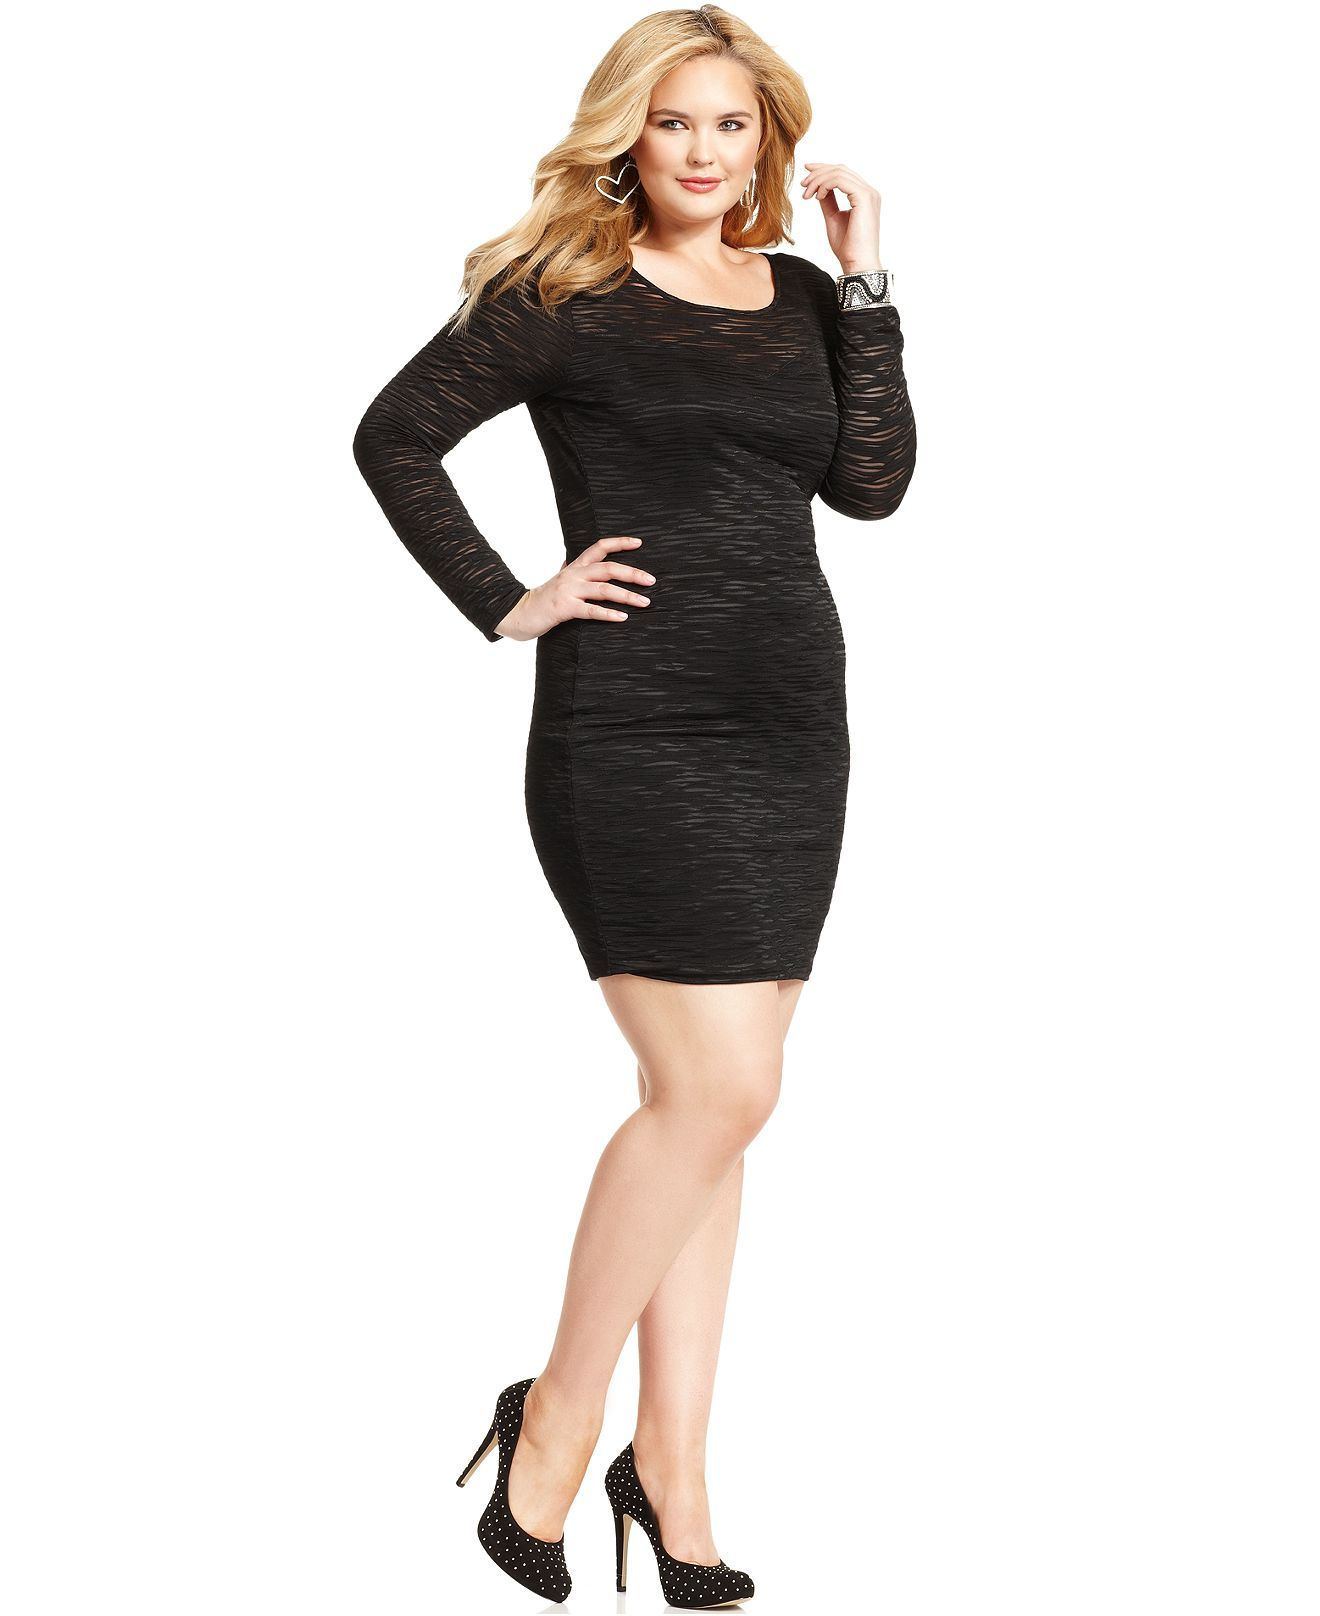 Little thing bodycon plus inches dresses 8 long size stores nigeria